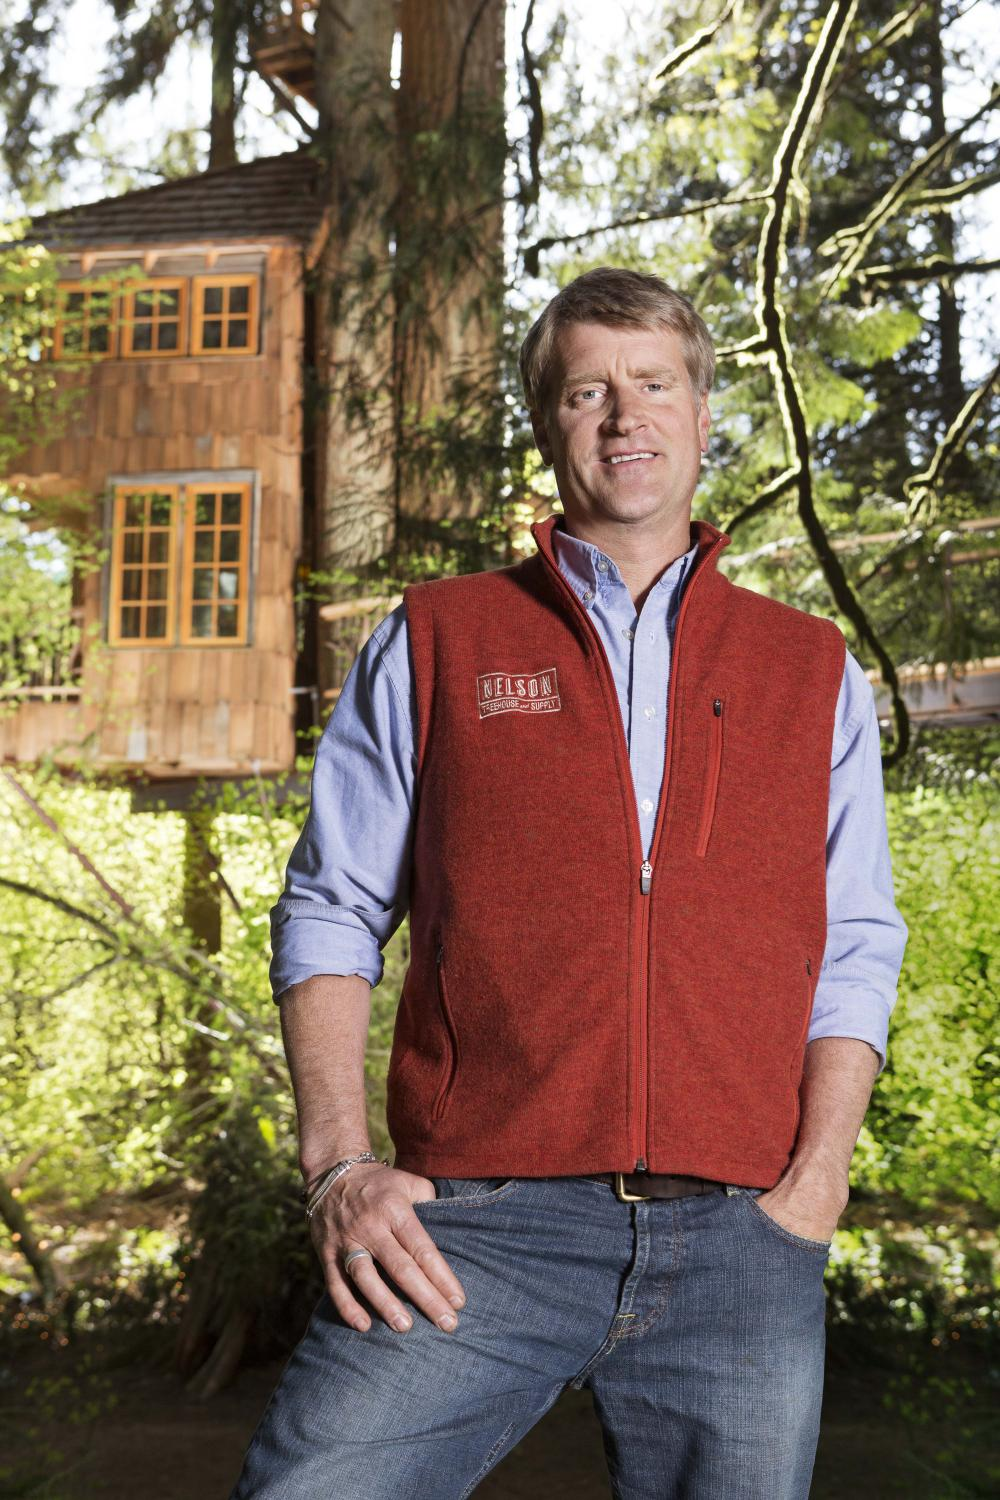 Treehouse Masters tackles special-needs design on tree house interior, tree house builders tv show, tree house building plans, tree house hotel washington, tree house brewery, tree house floor plans, the ugliest creatures on planet, tree house friends, tree masters tree houses, tree houses from planet earth discovery,